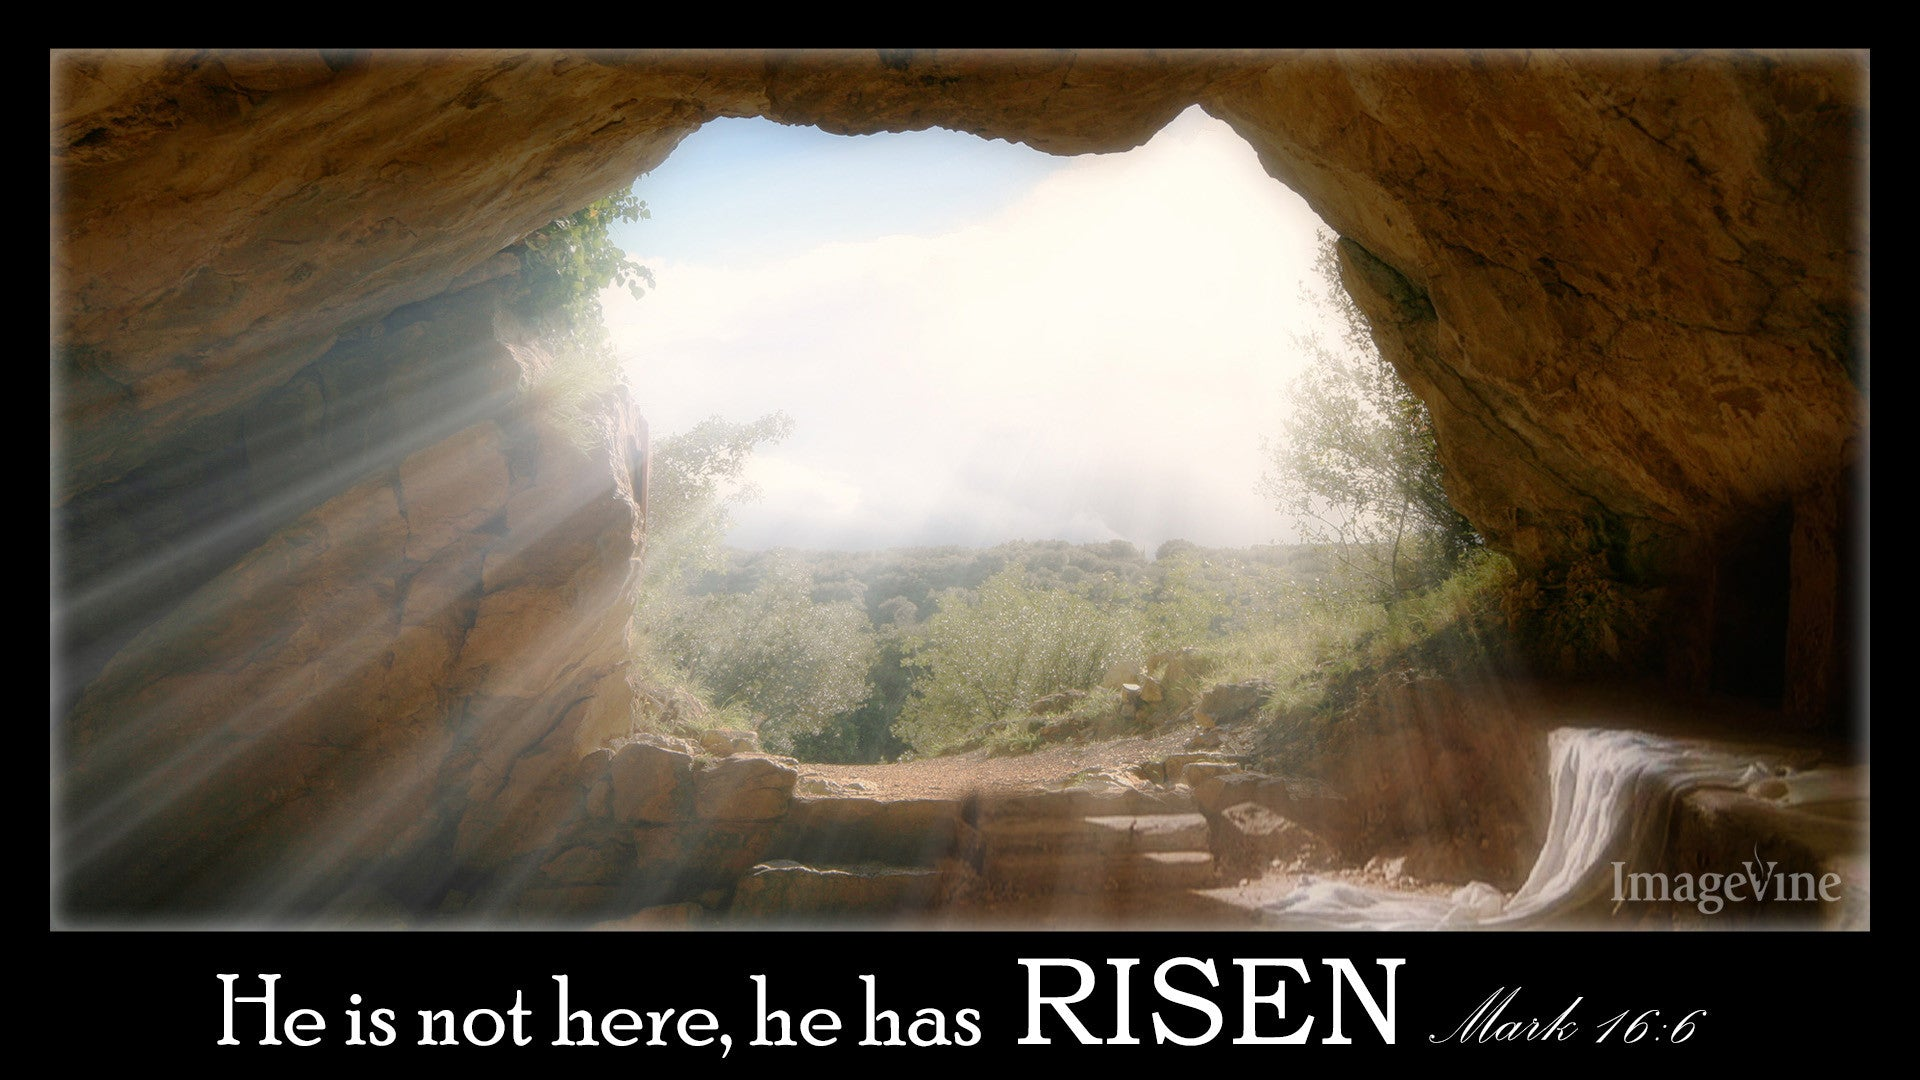 empty tomb, open, easter Sunday, he has risen, quote, background, powerpoint